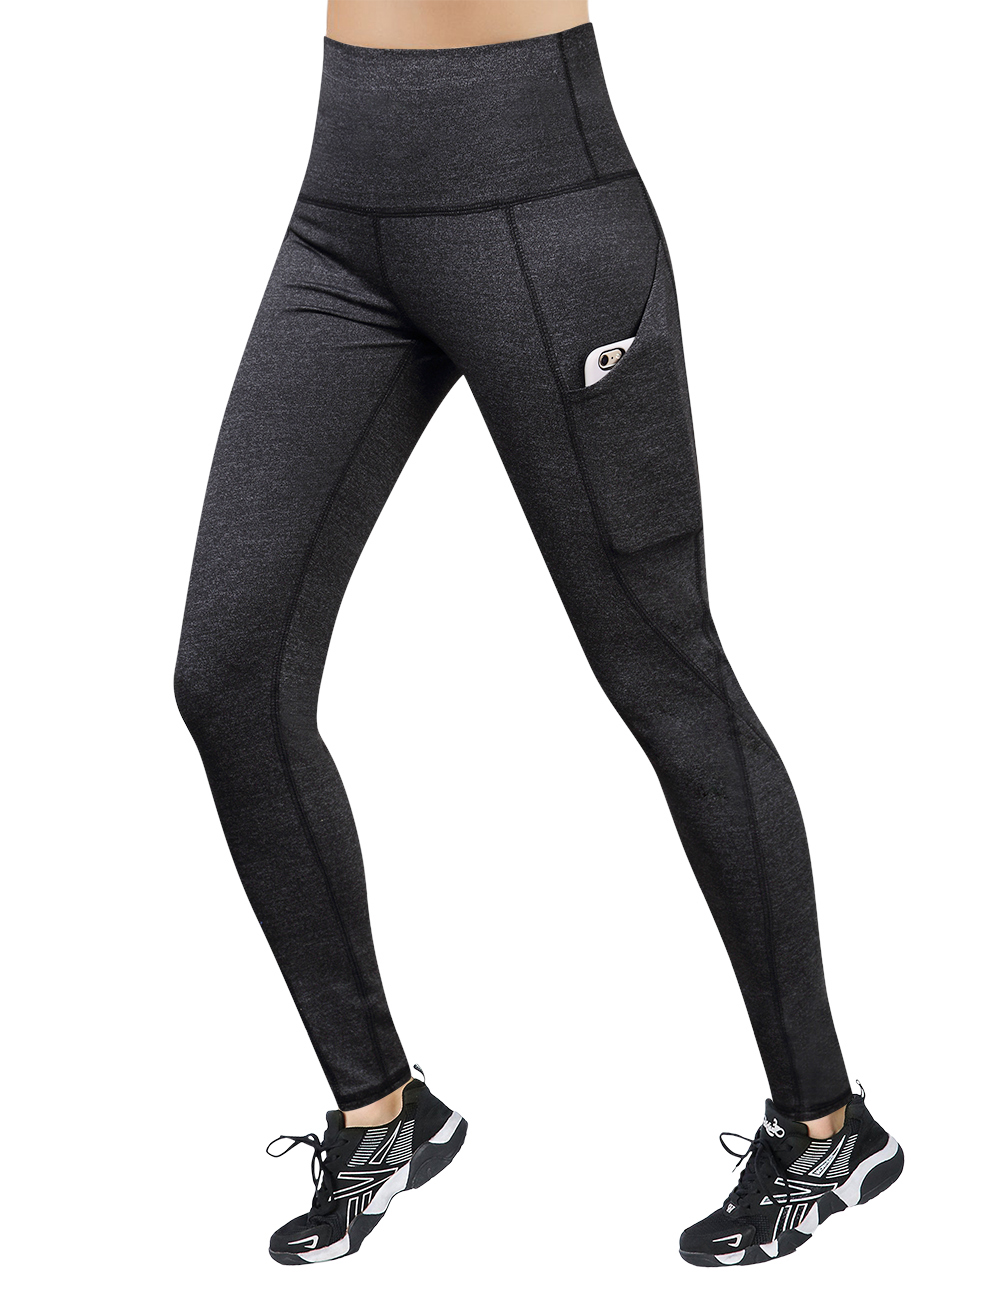 [US Direct] Yesfashion Women's High Waist Yoga Pants Tummy Control Workout Running Four-Way Stretch Yoga Leggings with Pockets